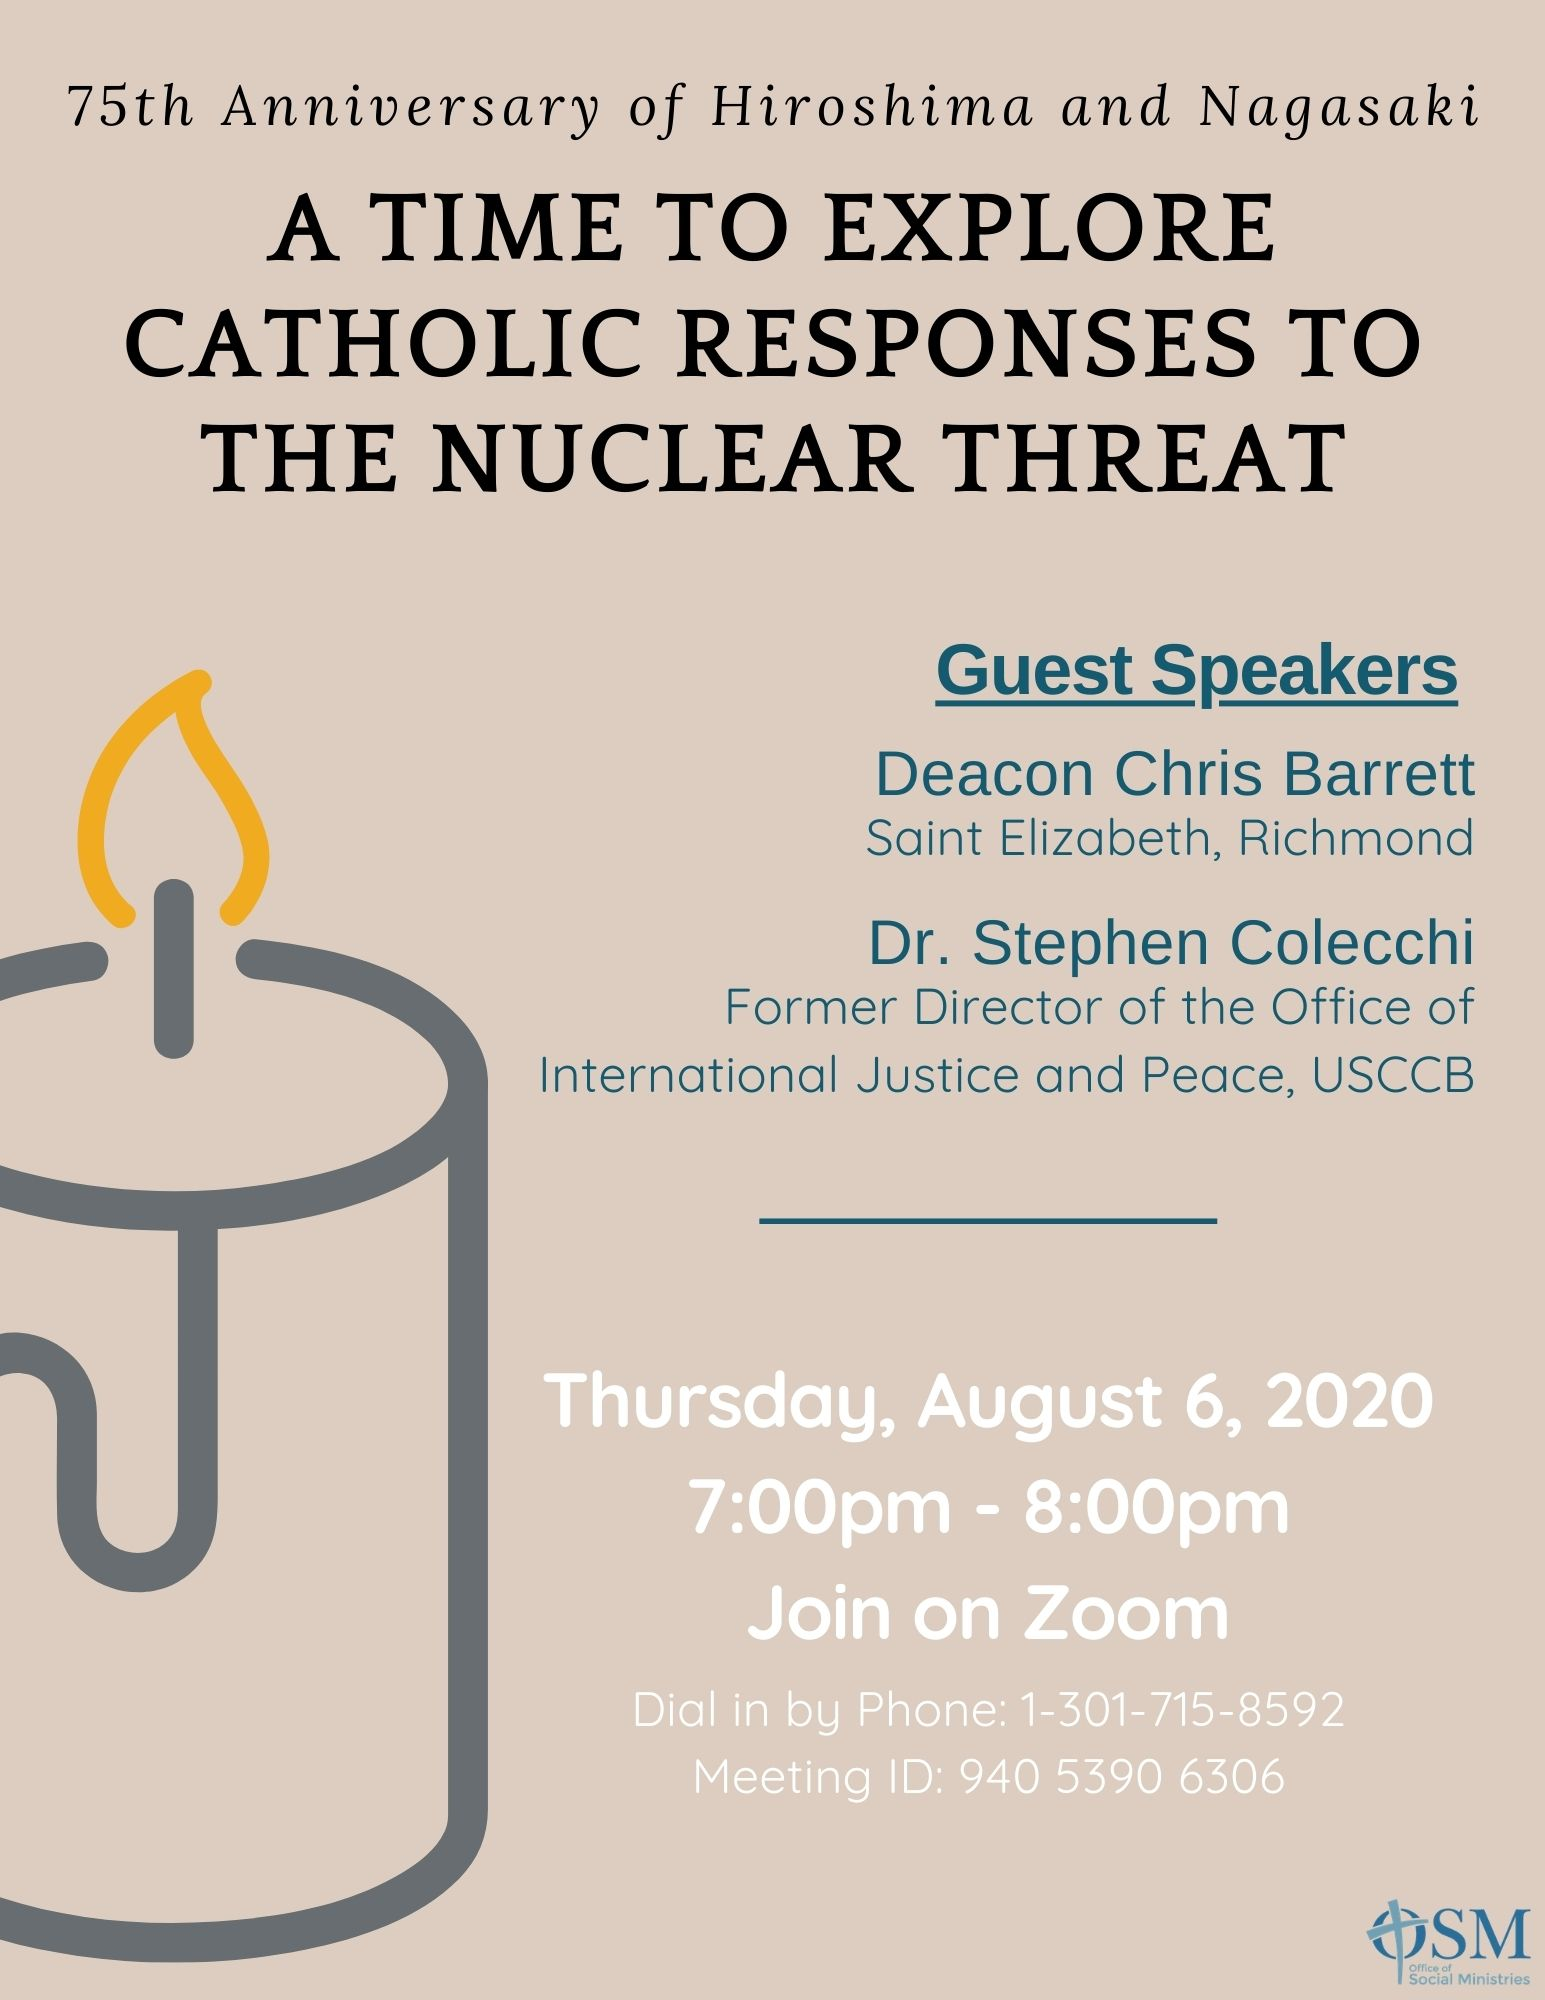 Tan background, illustration of a candle, Text A time to explore catholic response to nuclear threat, link to event